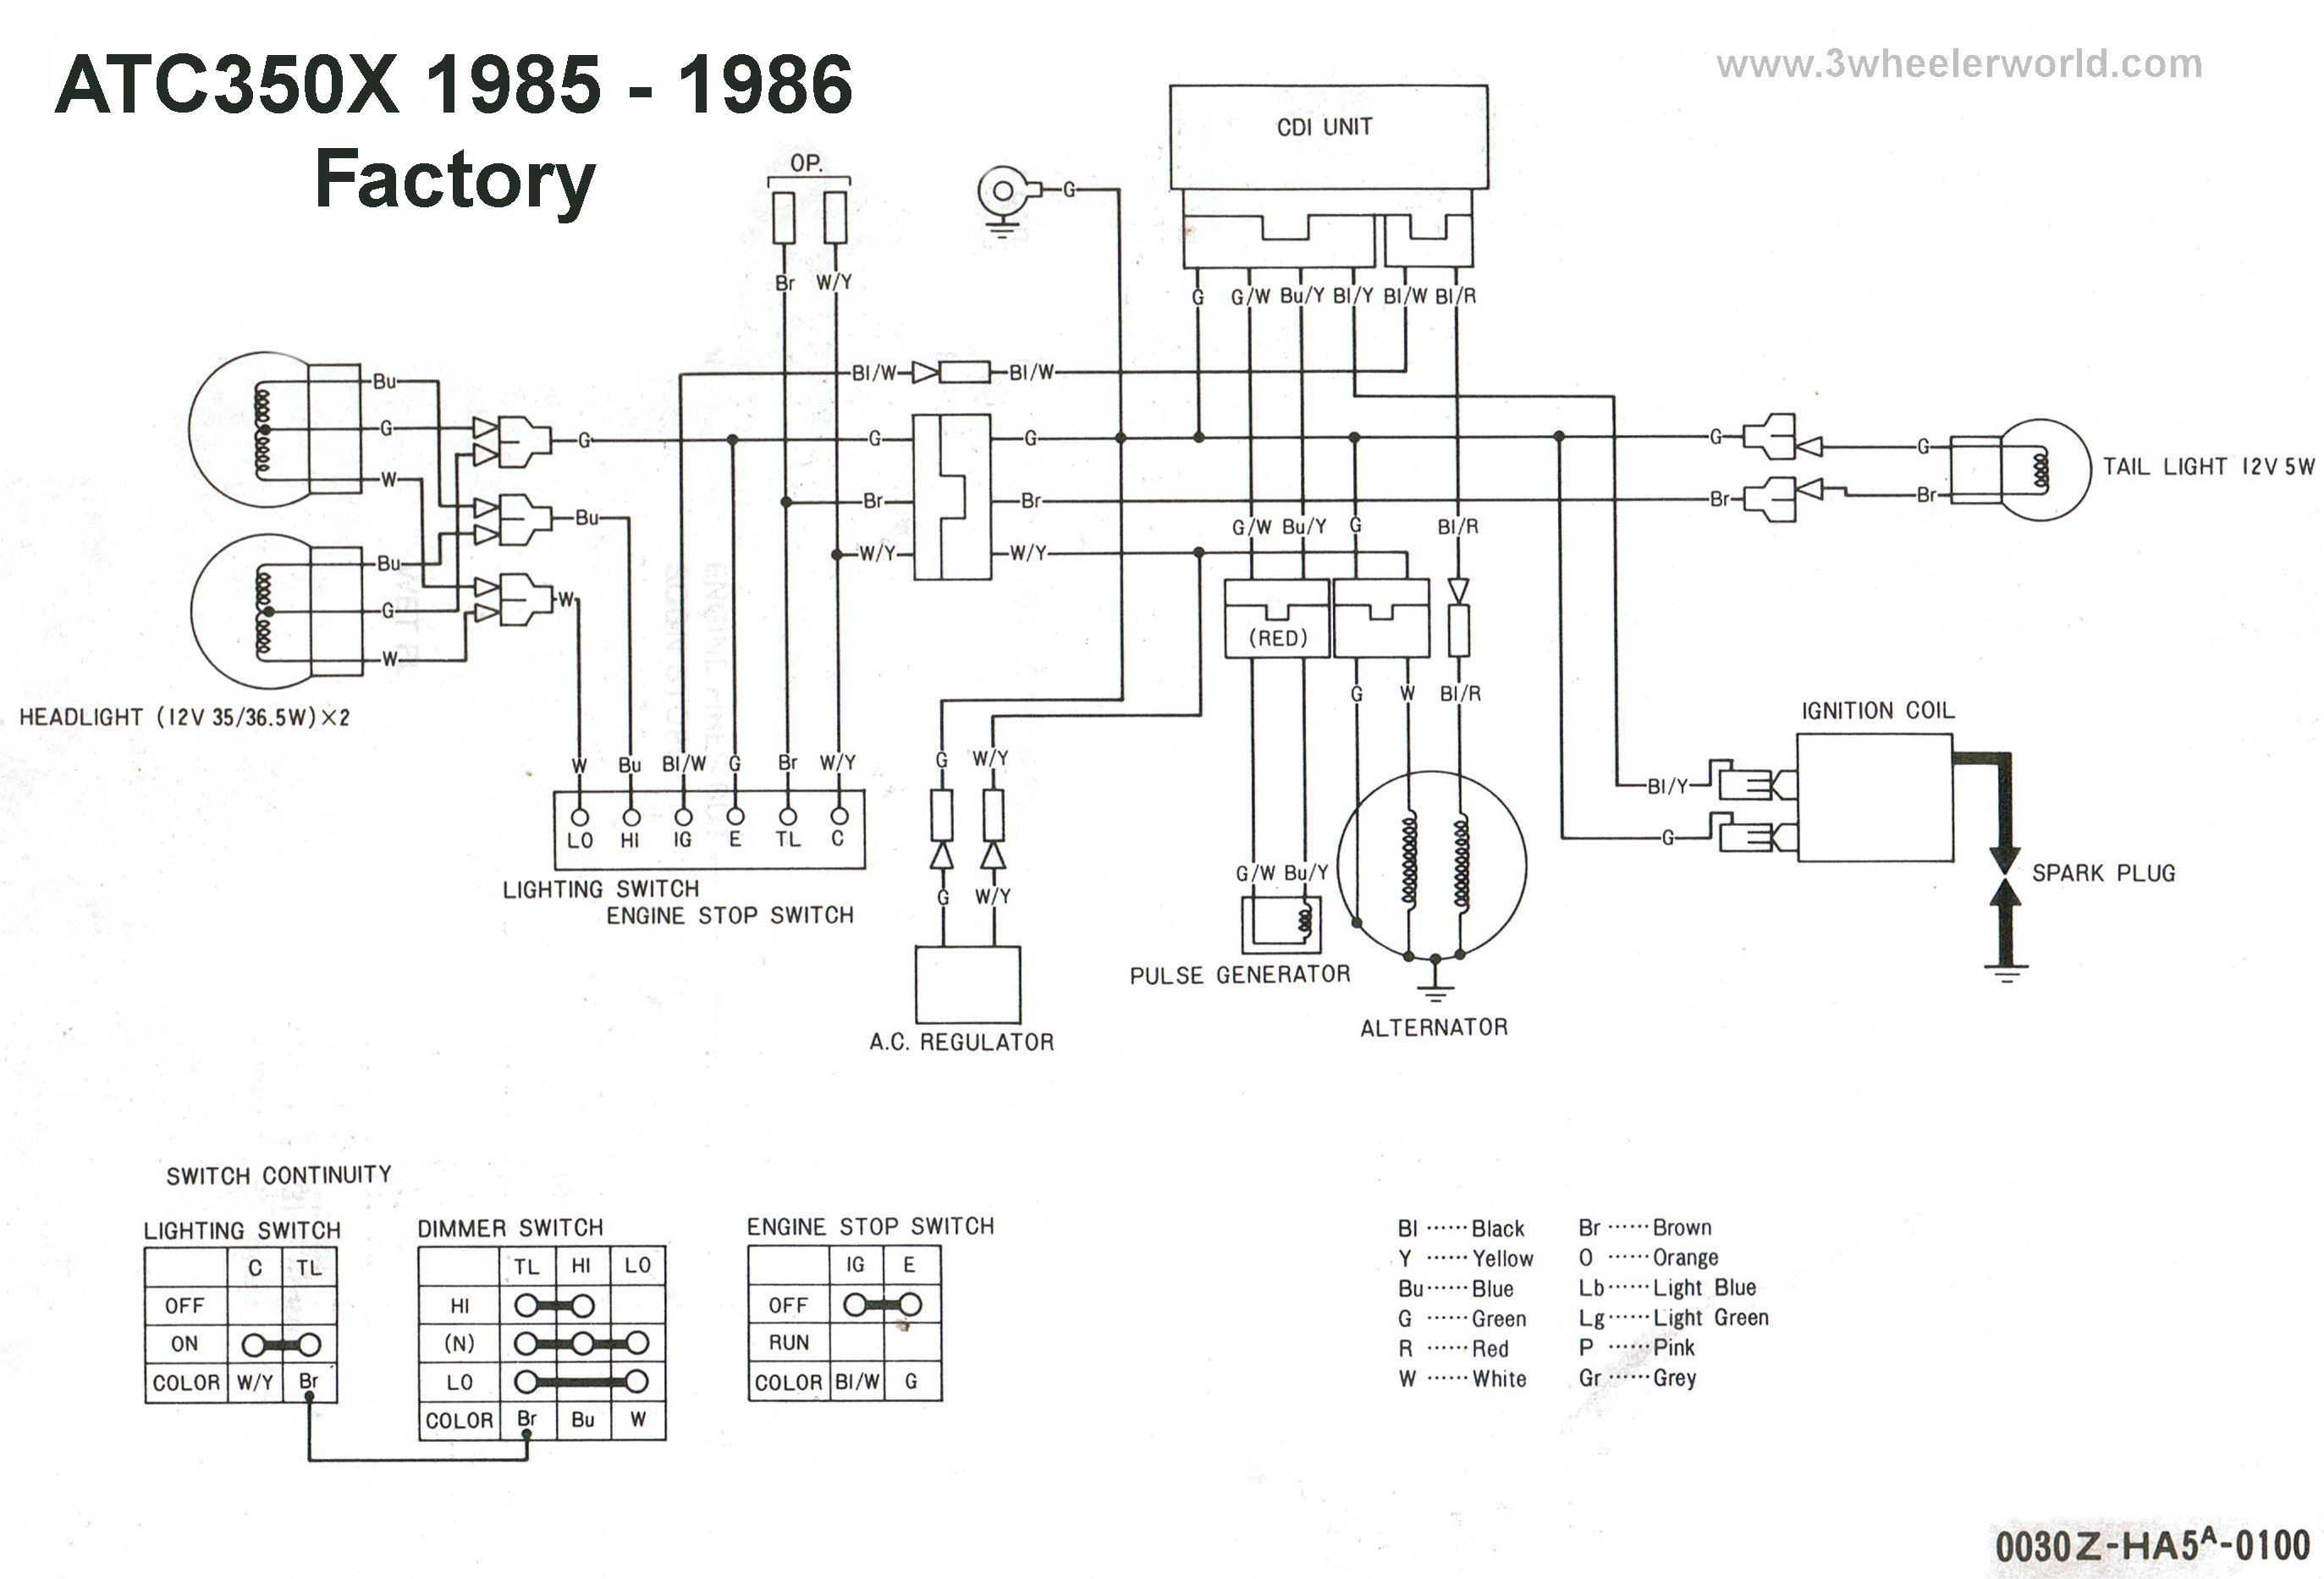 ATC350Xx85Thru86 3 wheeler world tech help honda wiring diagrams 1987 lt250r wiring diagram at crackthecode.co